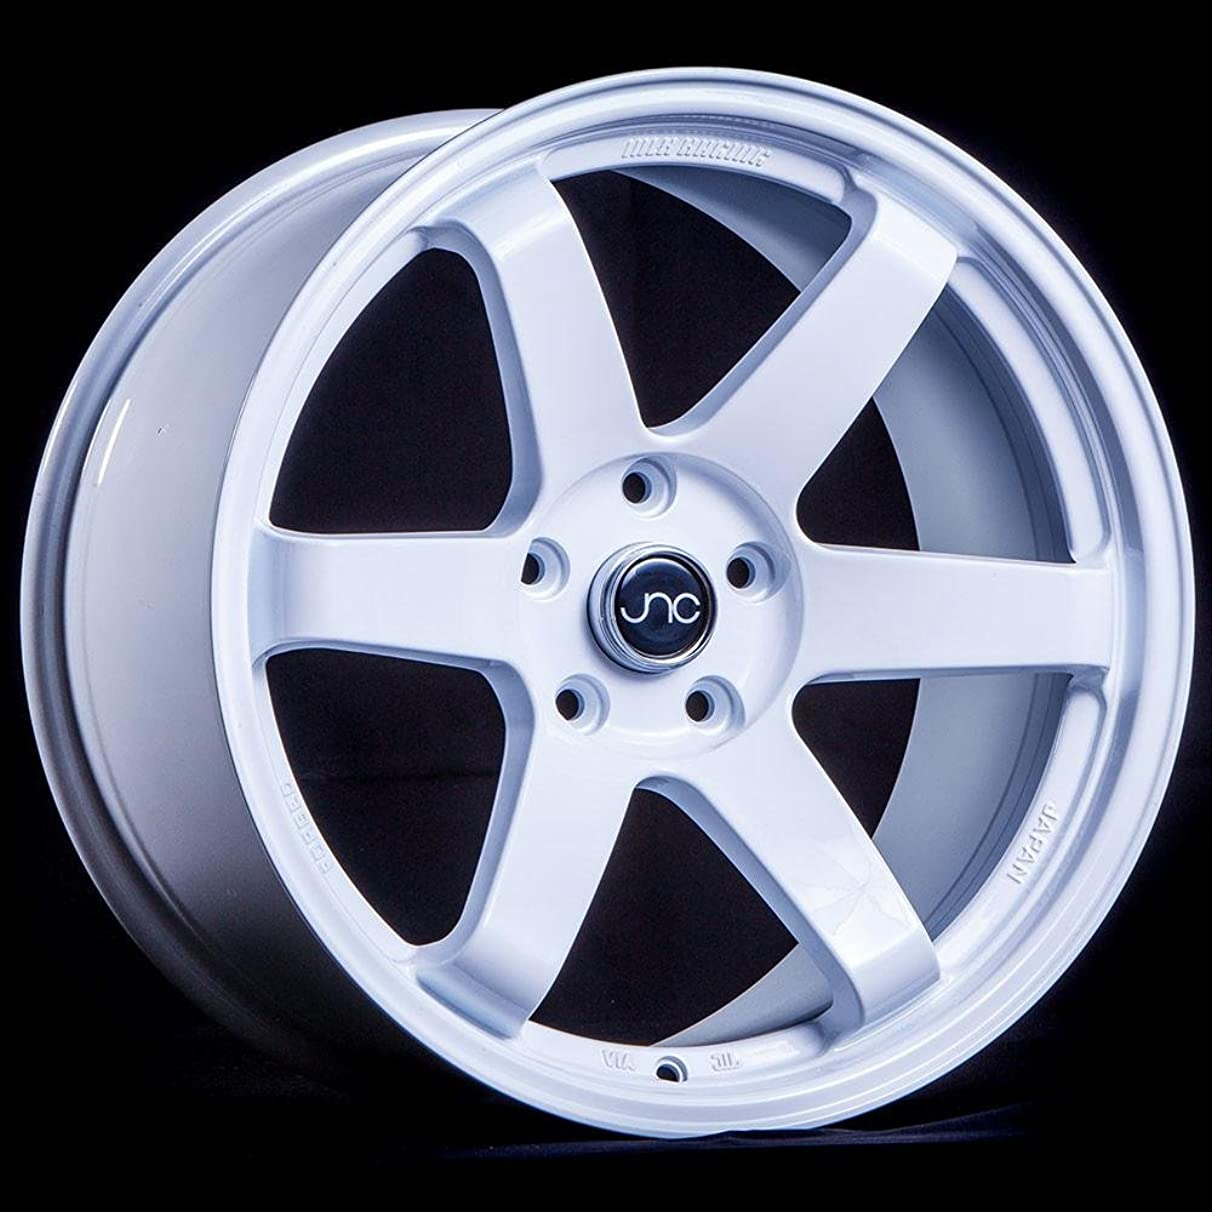 JNC014 White 19x9.5 5x114.3 ET25 Offset Wheel Rim